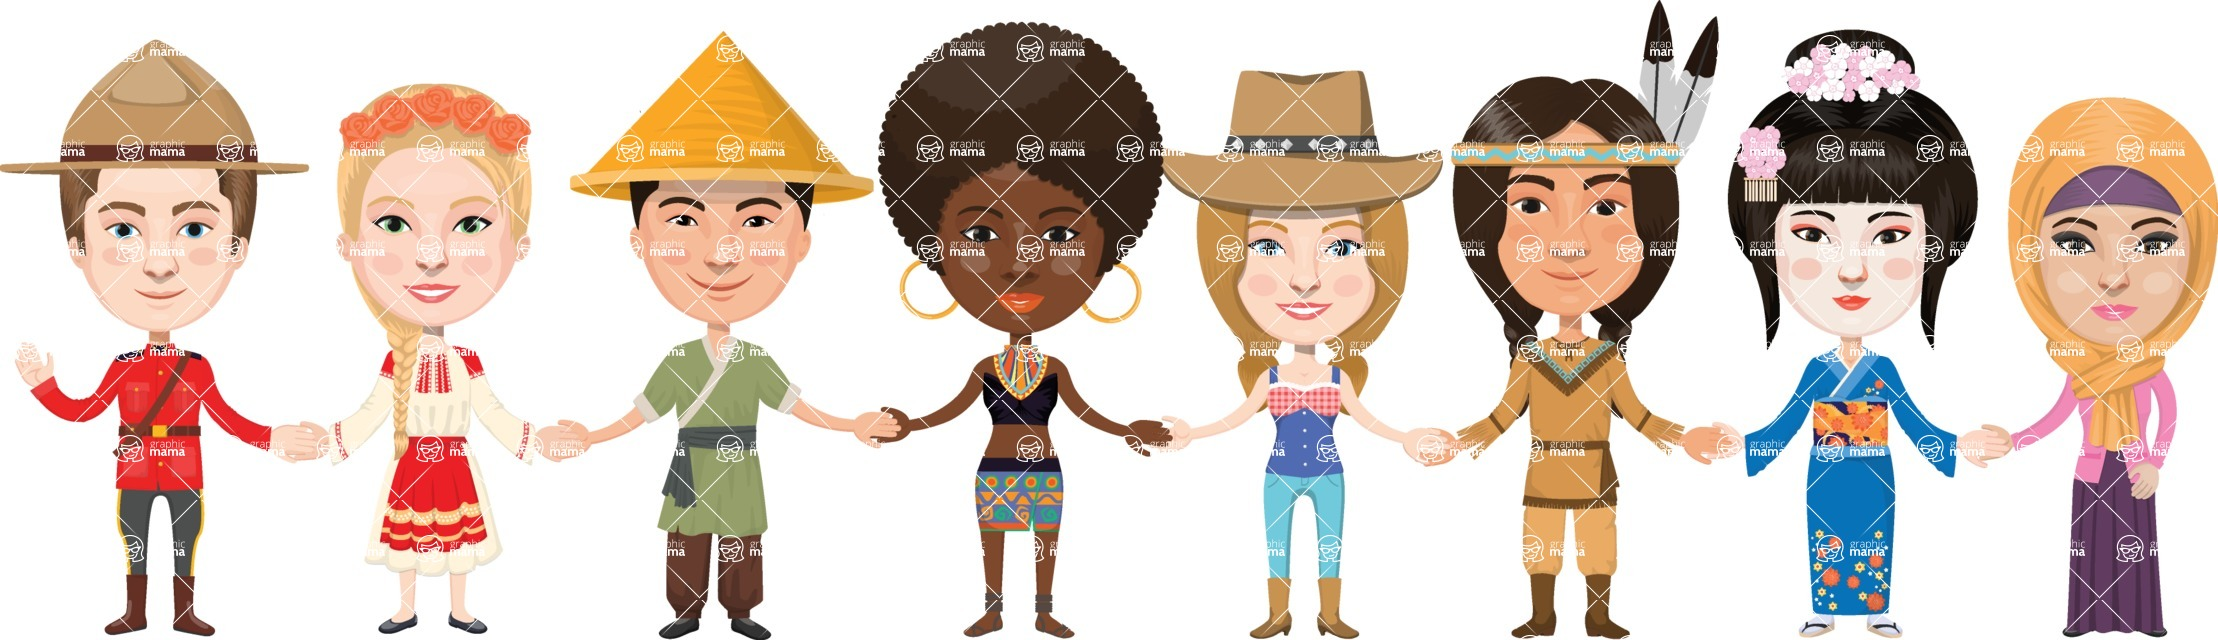 Students of different nationality holding hands clipart png black and white stock People and Cultures | GraphicMama / Different nationalities ... png black and white stock